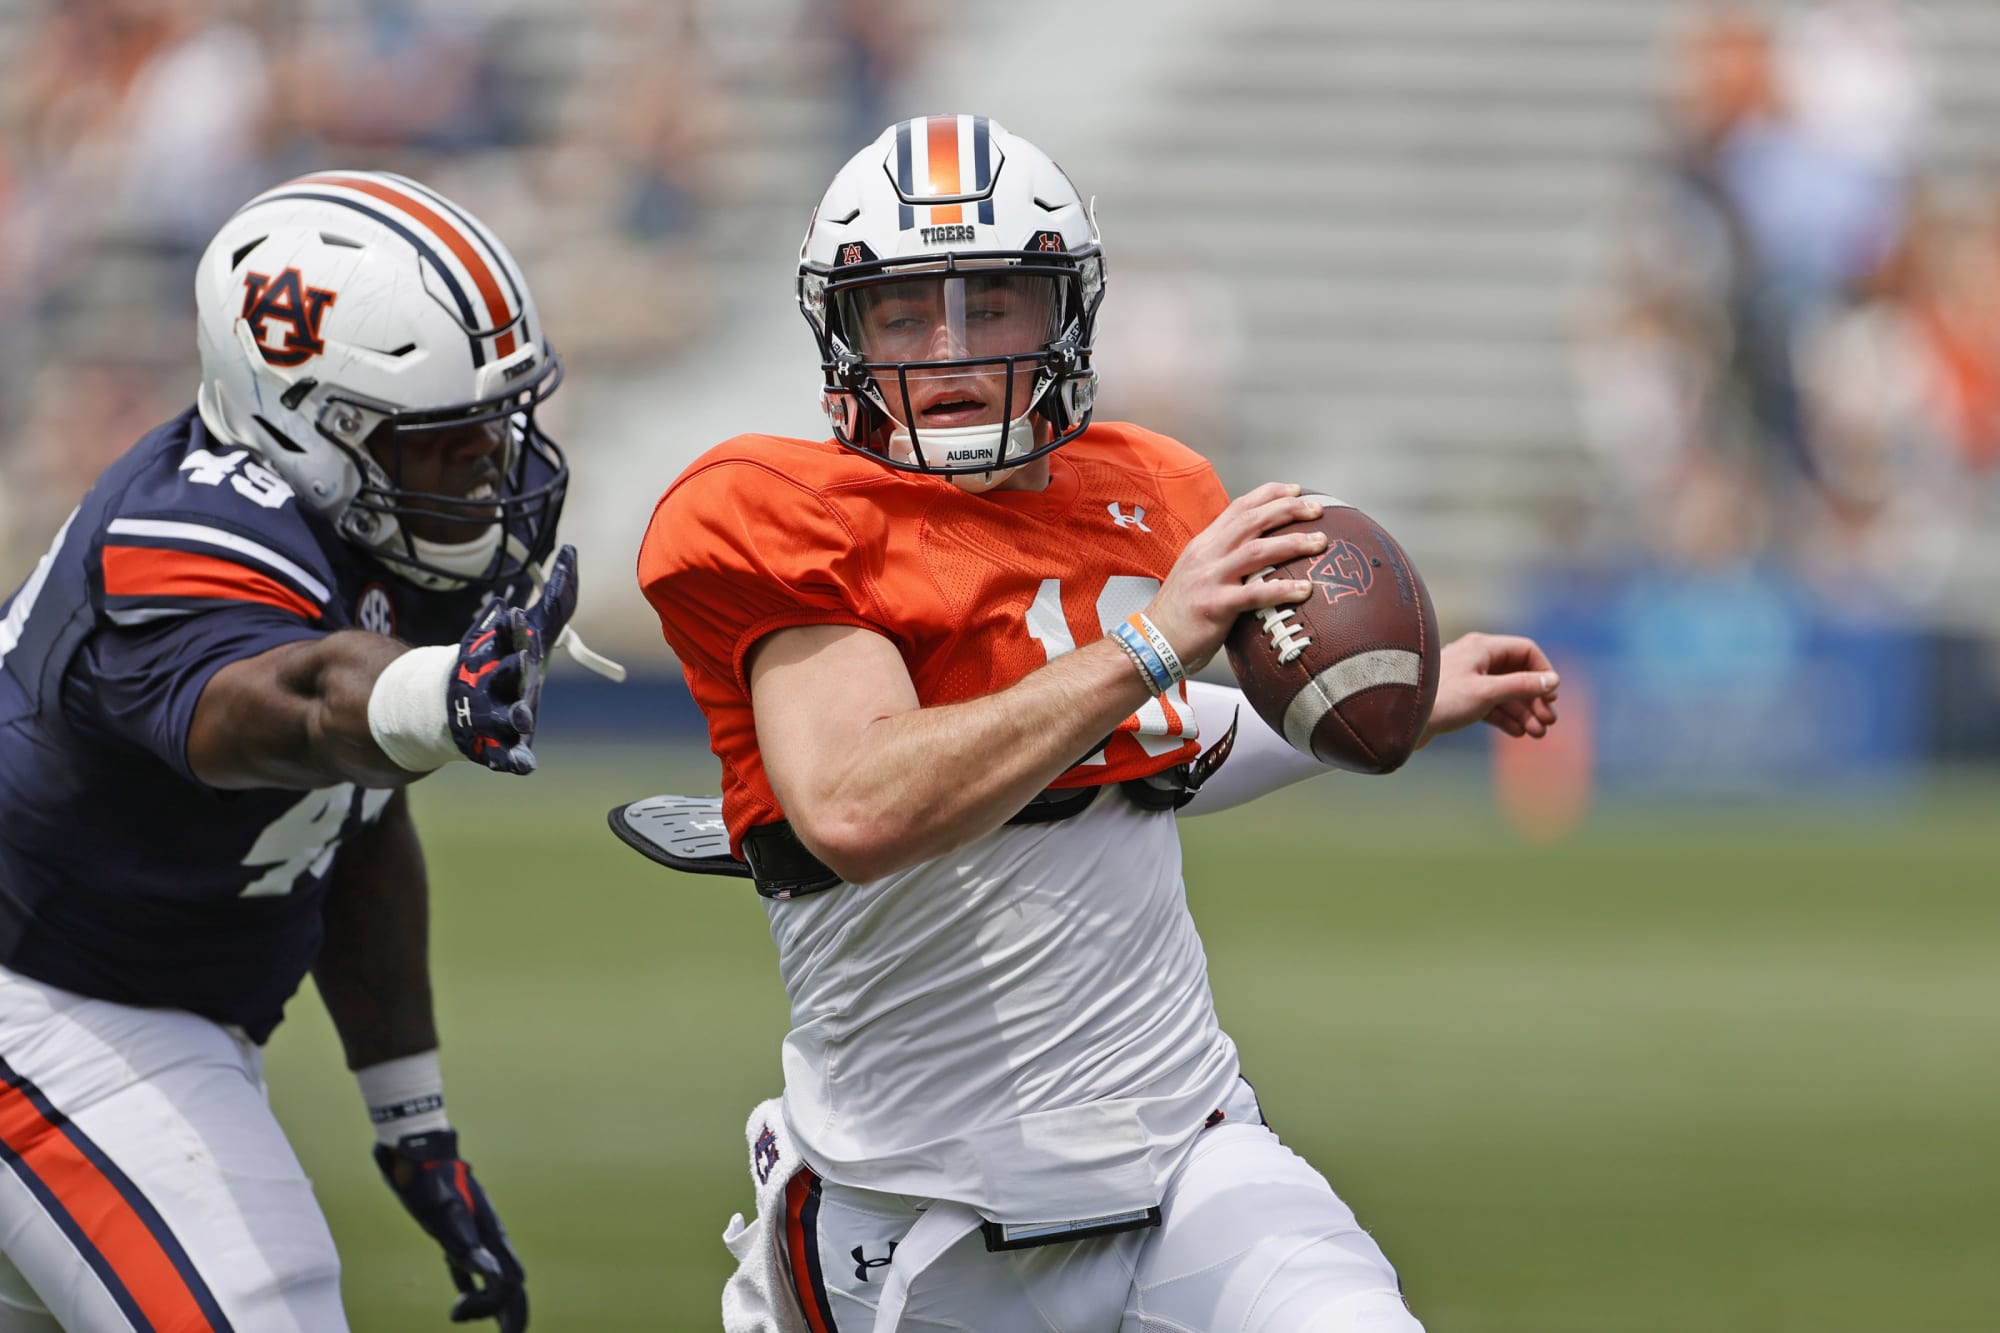 Auburn football: Bryan Harsin weighs in on the good and bad from Bo Mix's spring game